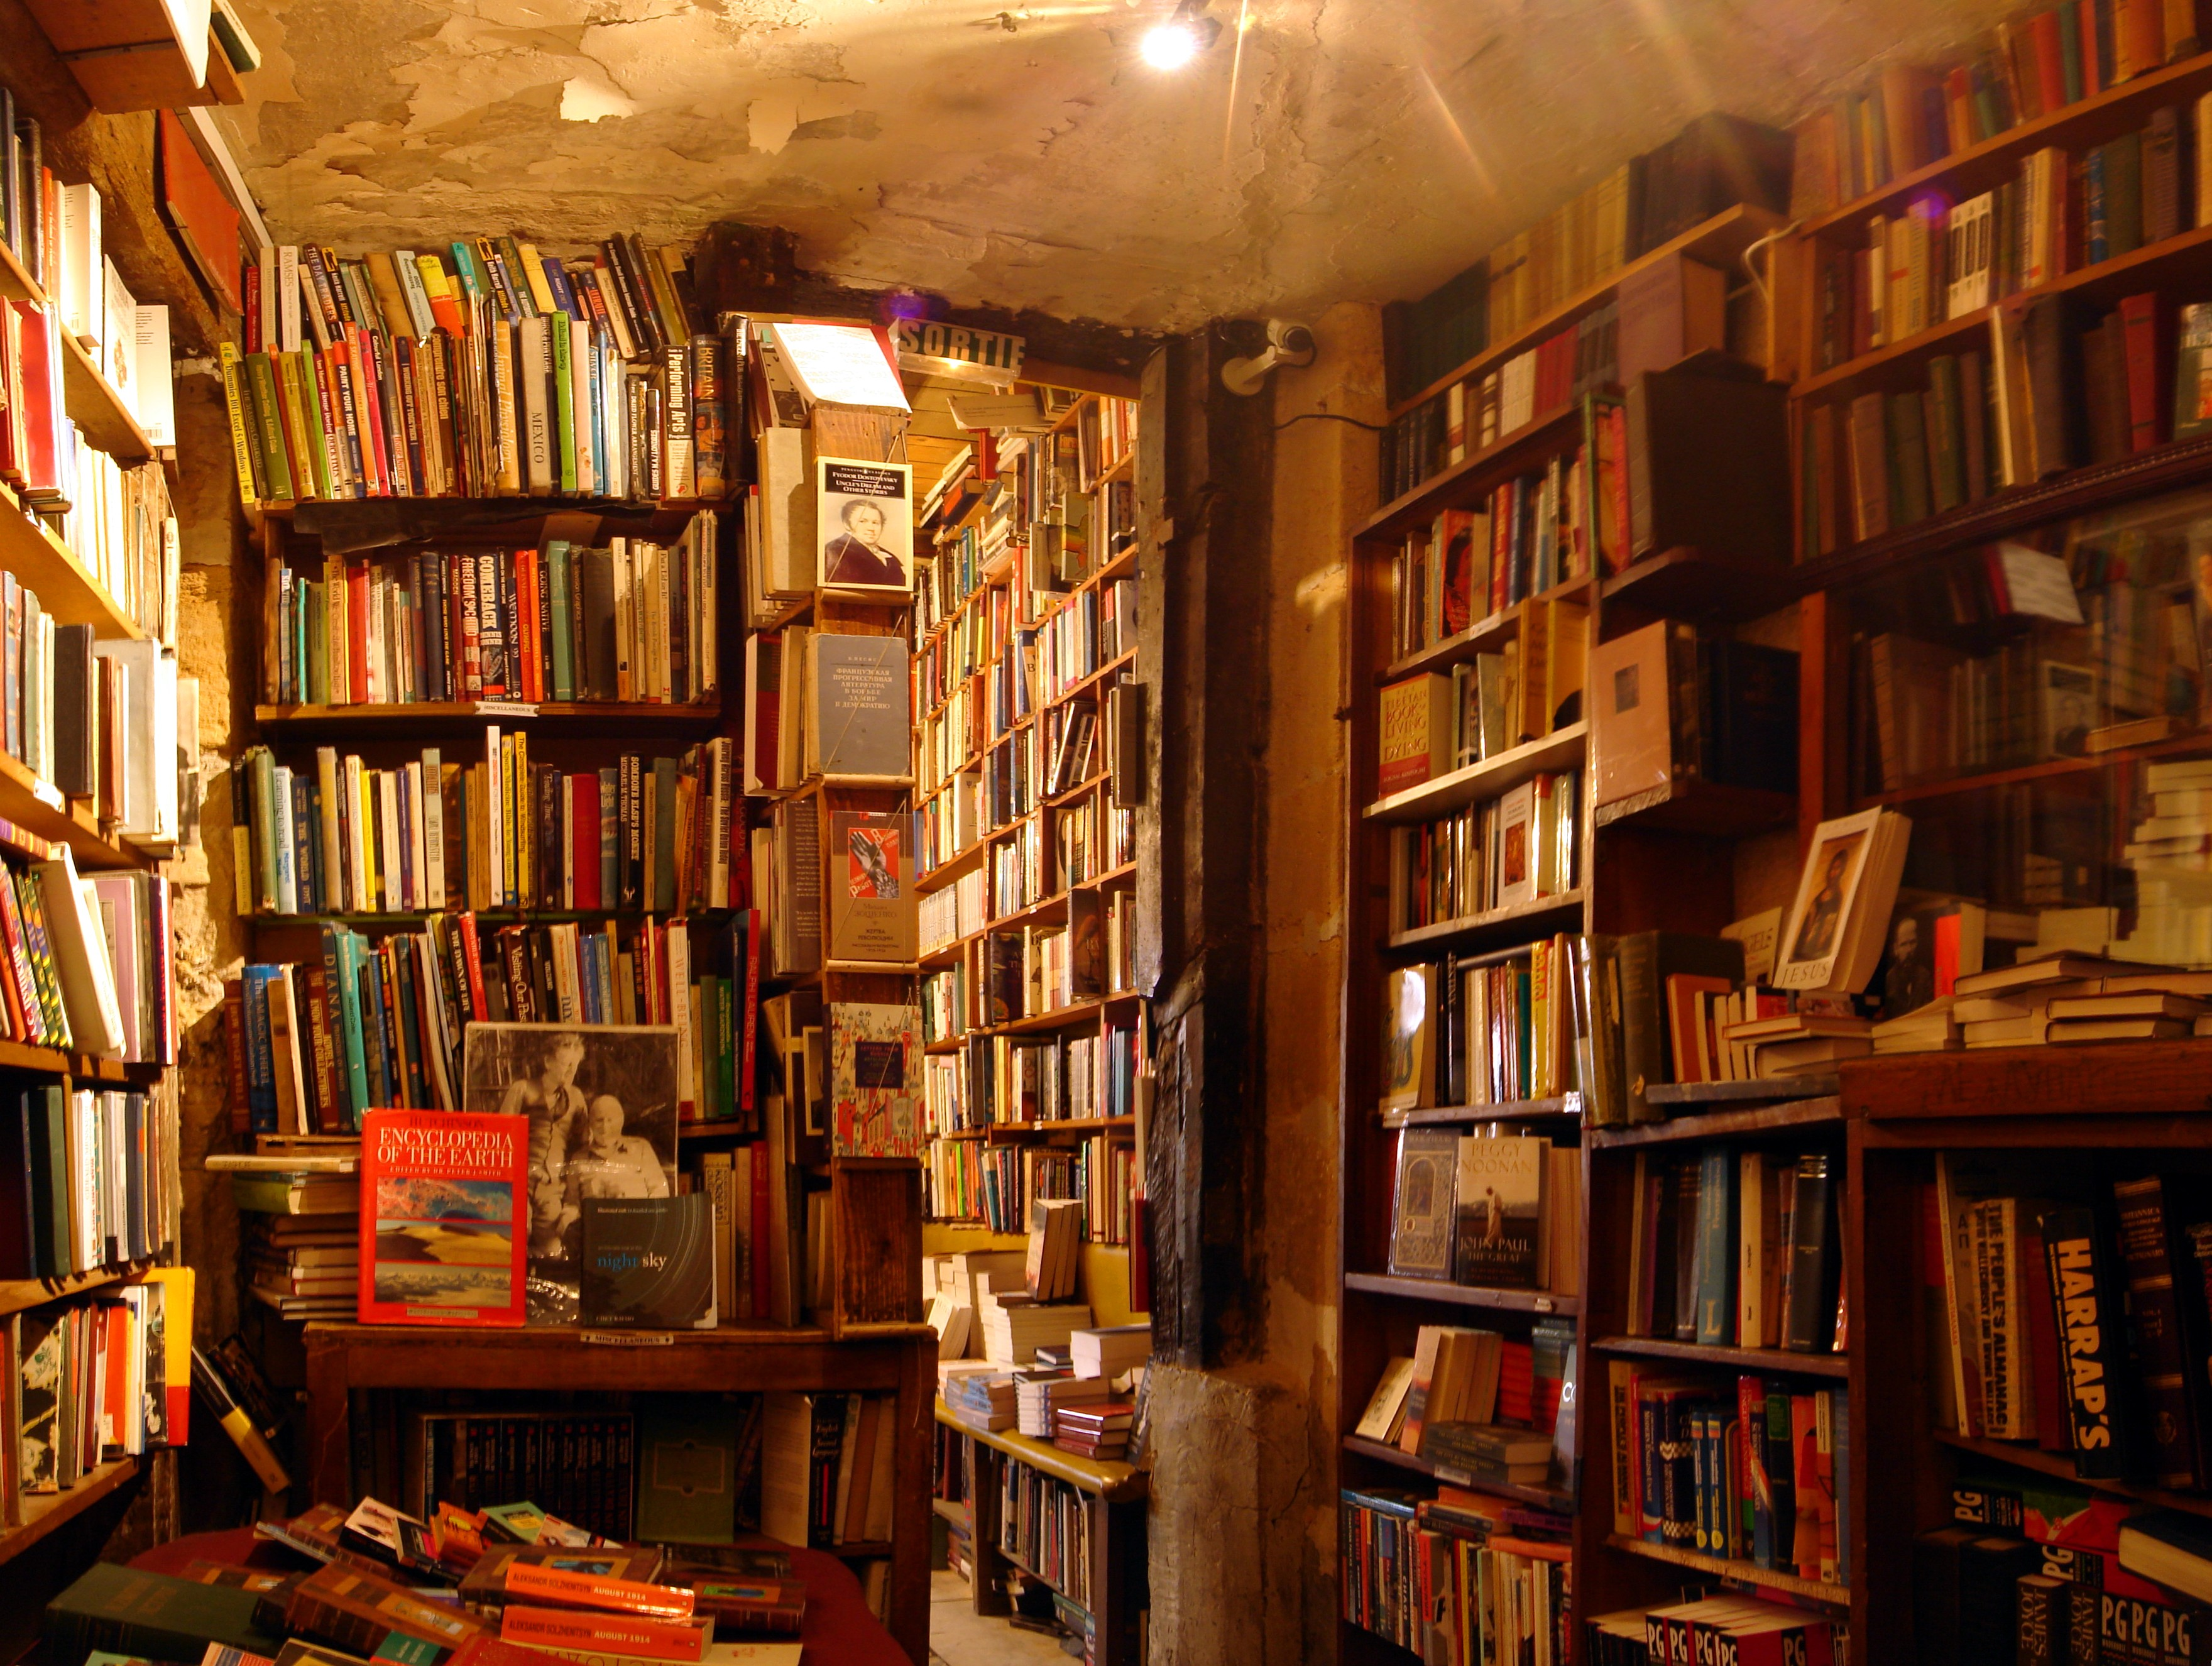 Alexandre Duret-Lutz from Paris, France - Shakespeare and Company bookshop Uploaded by Tomer T